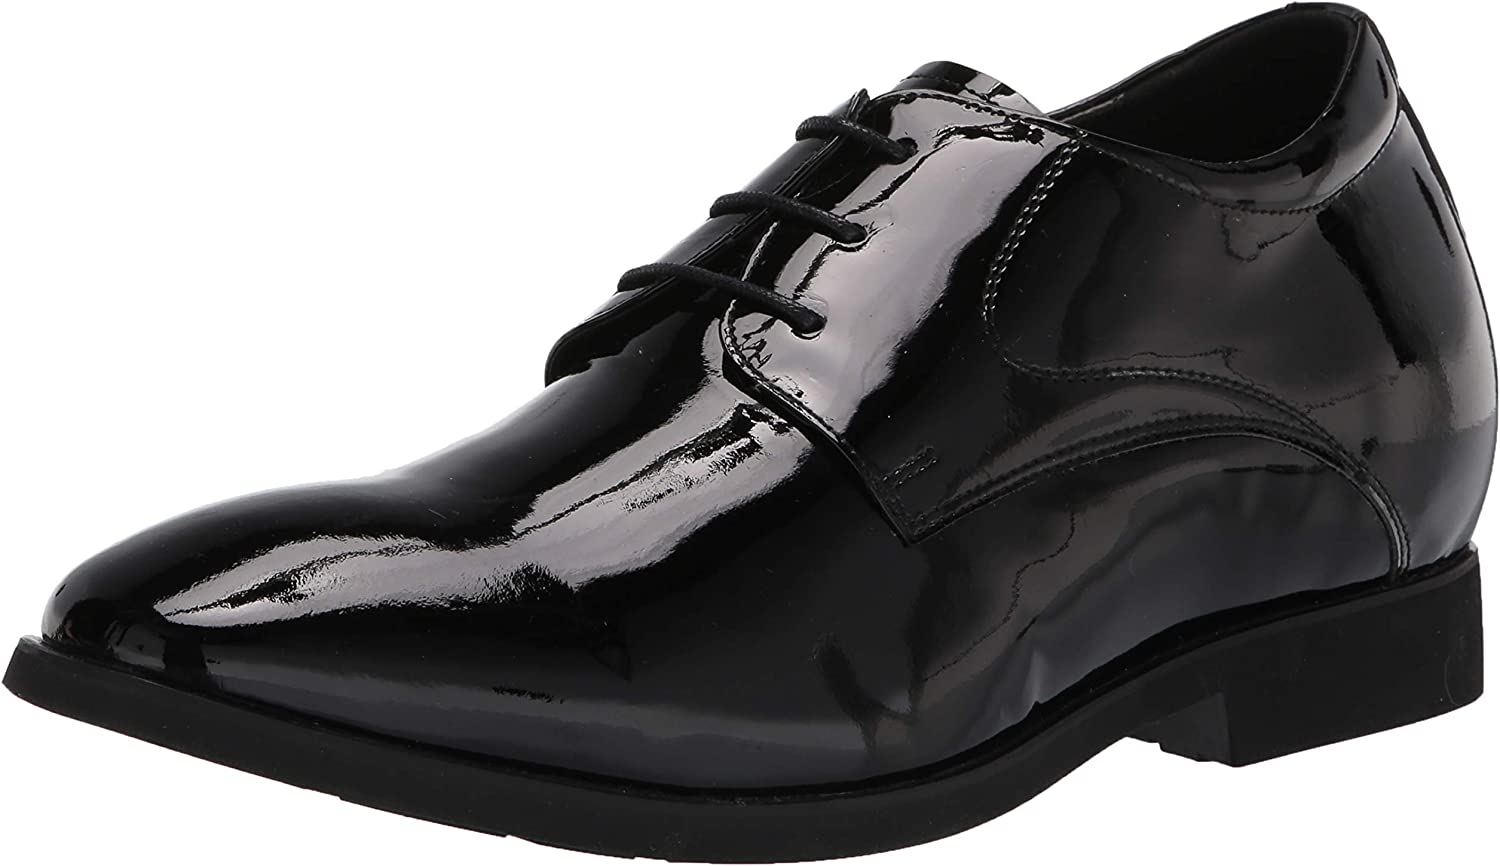 Calden Men's Invisible Height Increasing Elevator Shoes - Black Patent Leather Lace-up Formal Tuxedo Oxfords - 3 Inches Taller - K911929